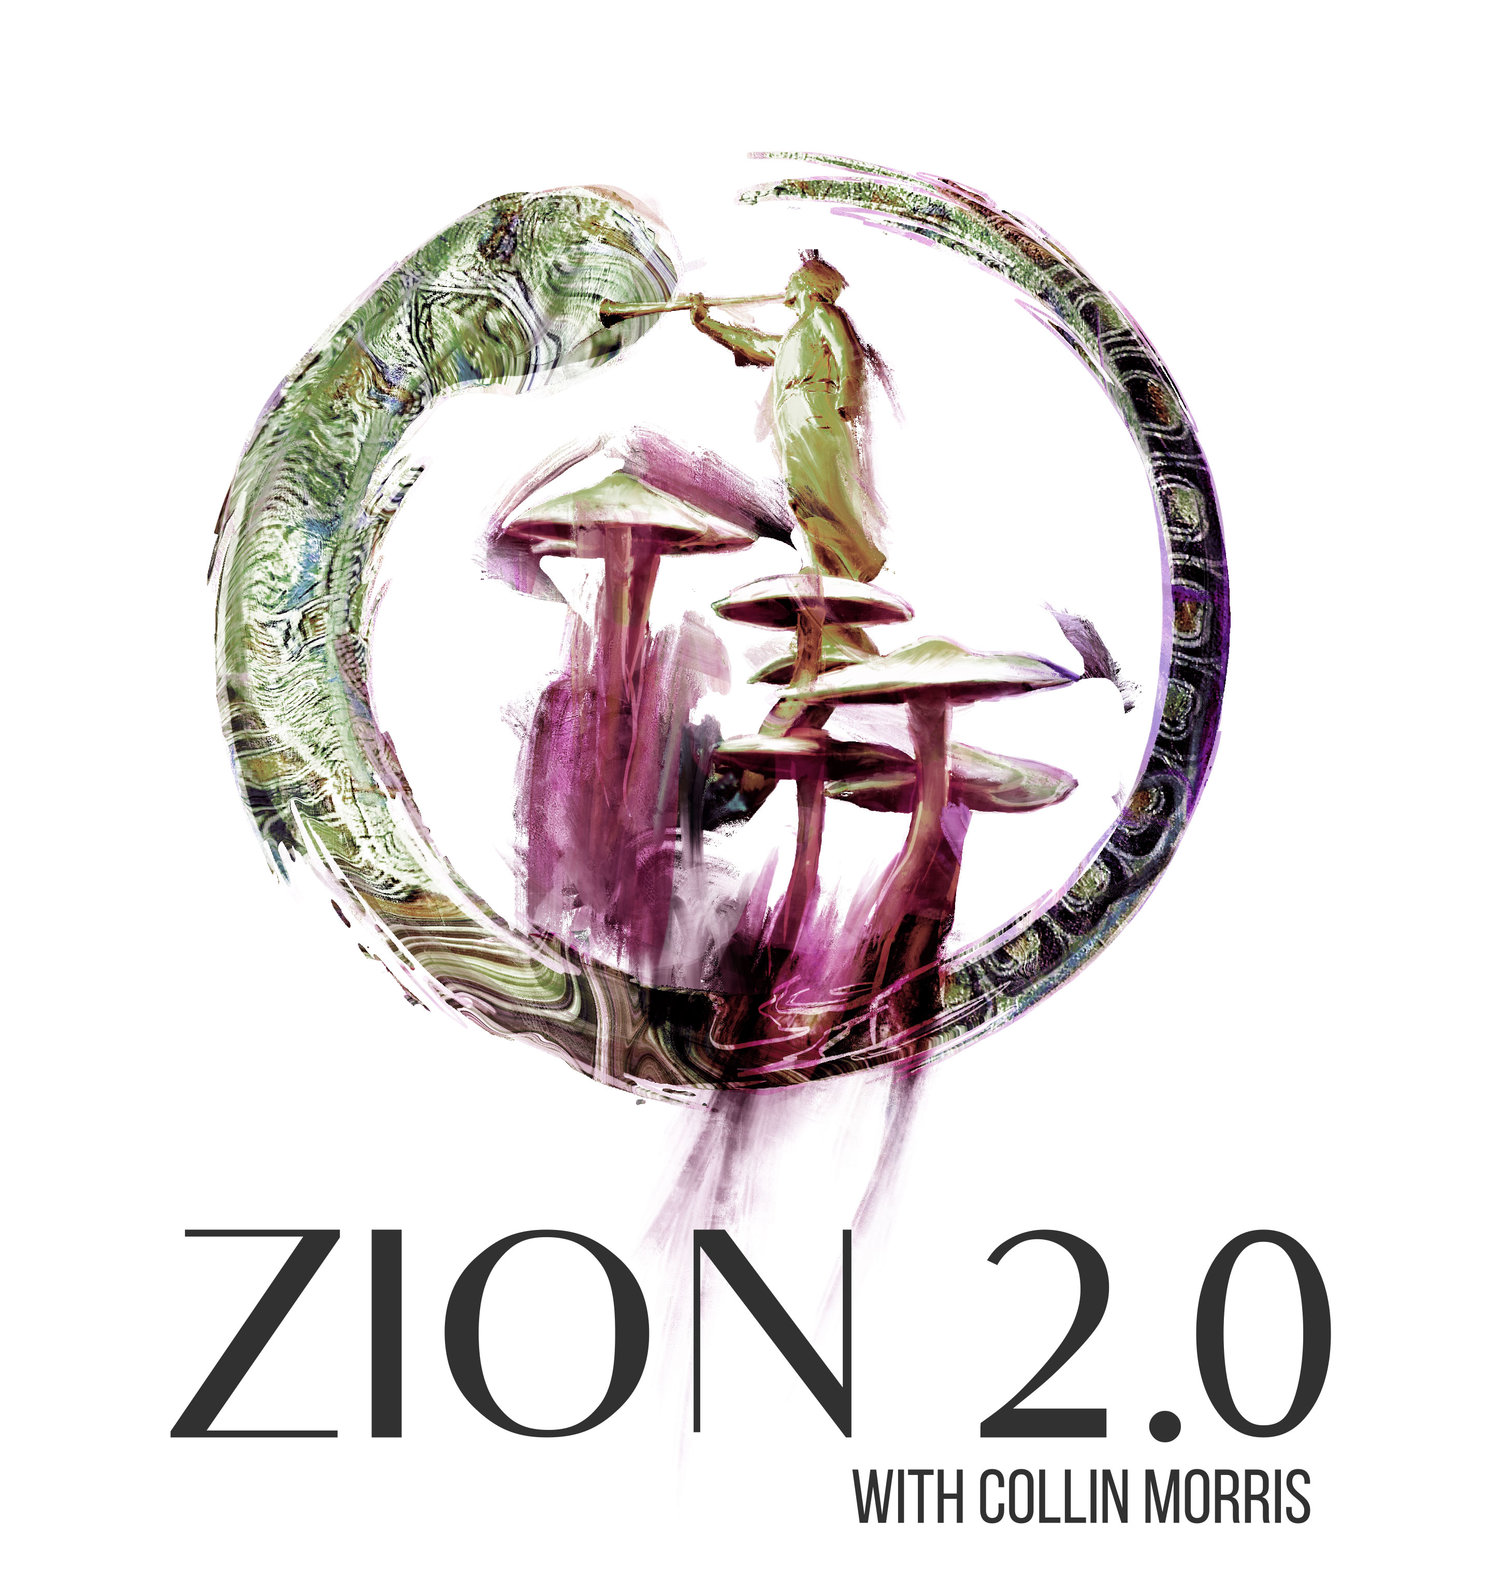 ZION 2.0 with Collin Morris